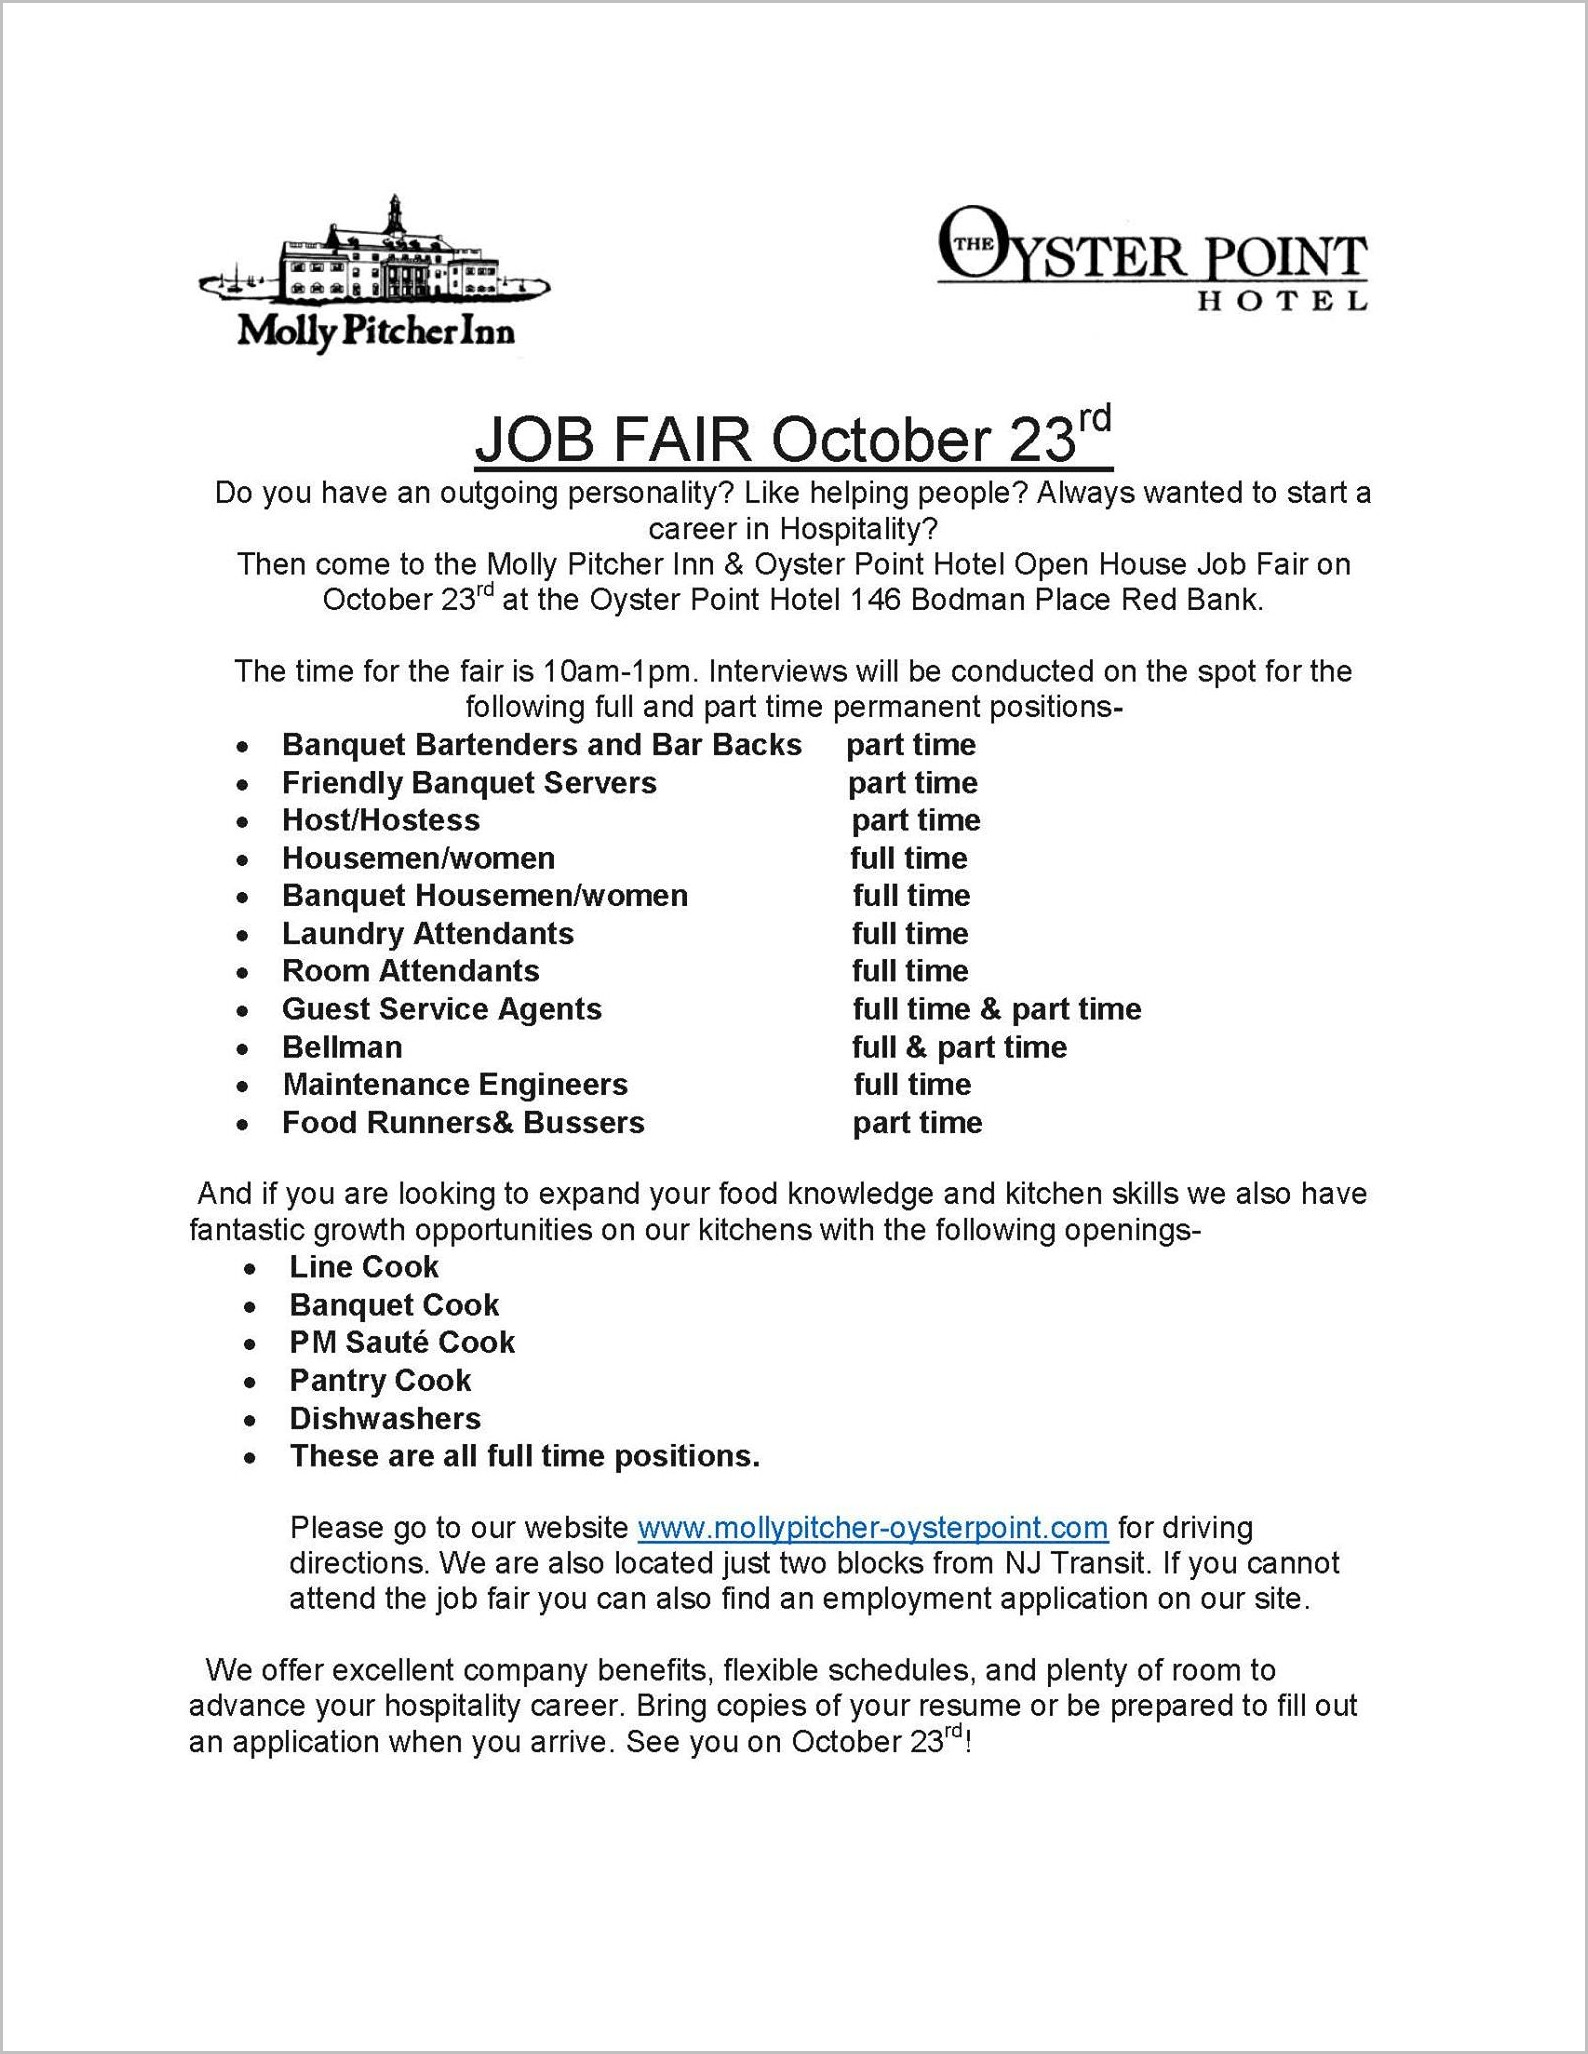 Nj Transit Job Fair